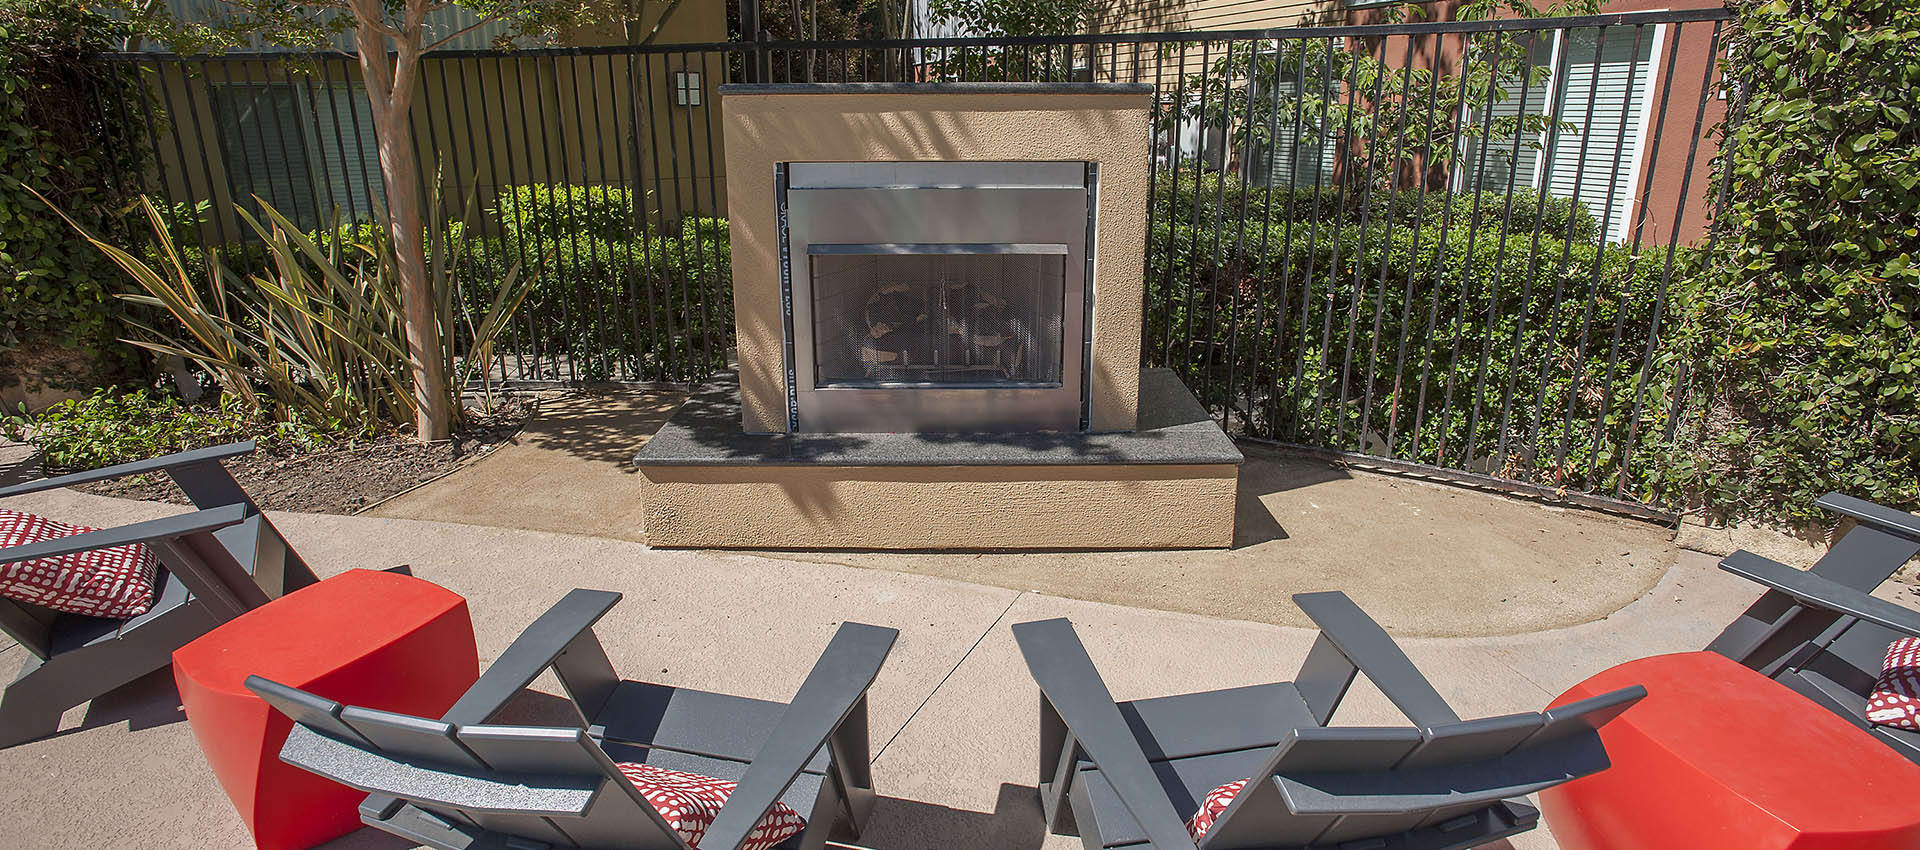 Outdoor Fireplace And Seating at Azure Apartment Homes in Petaluma, California